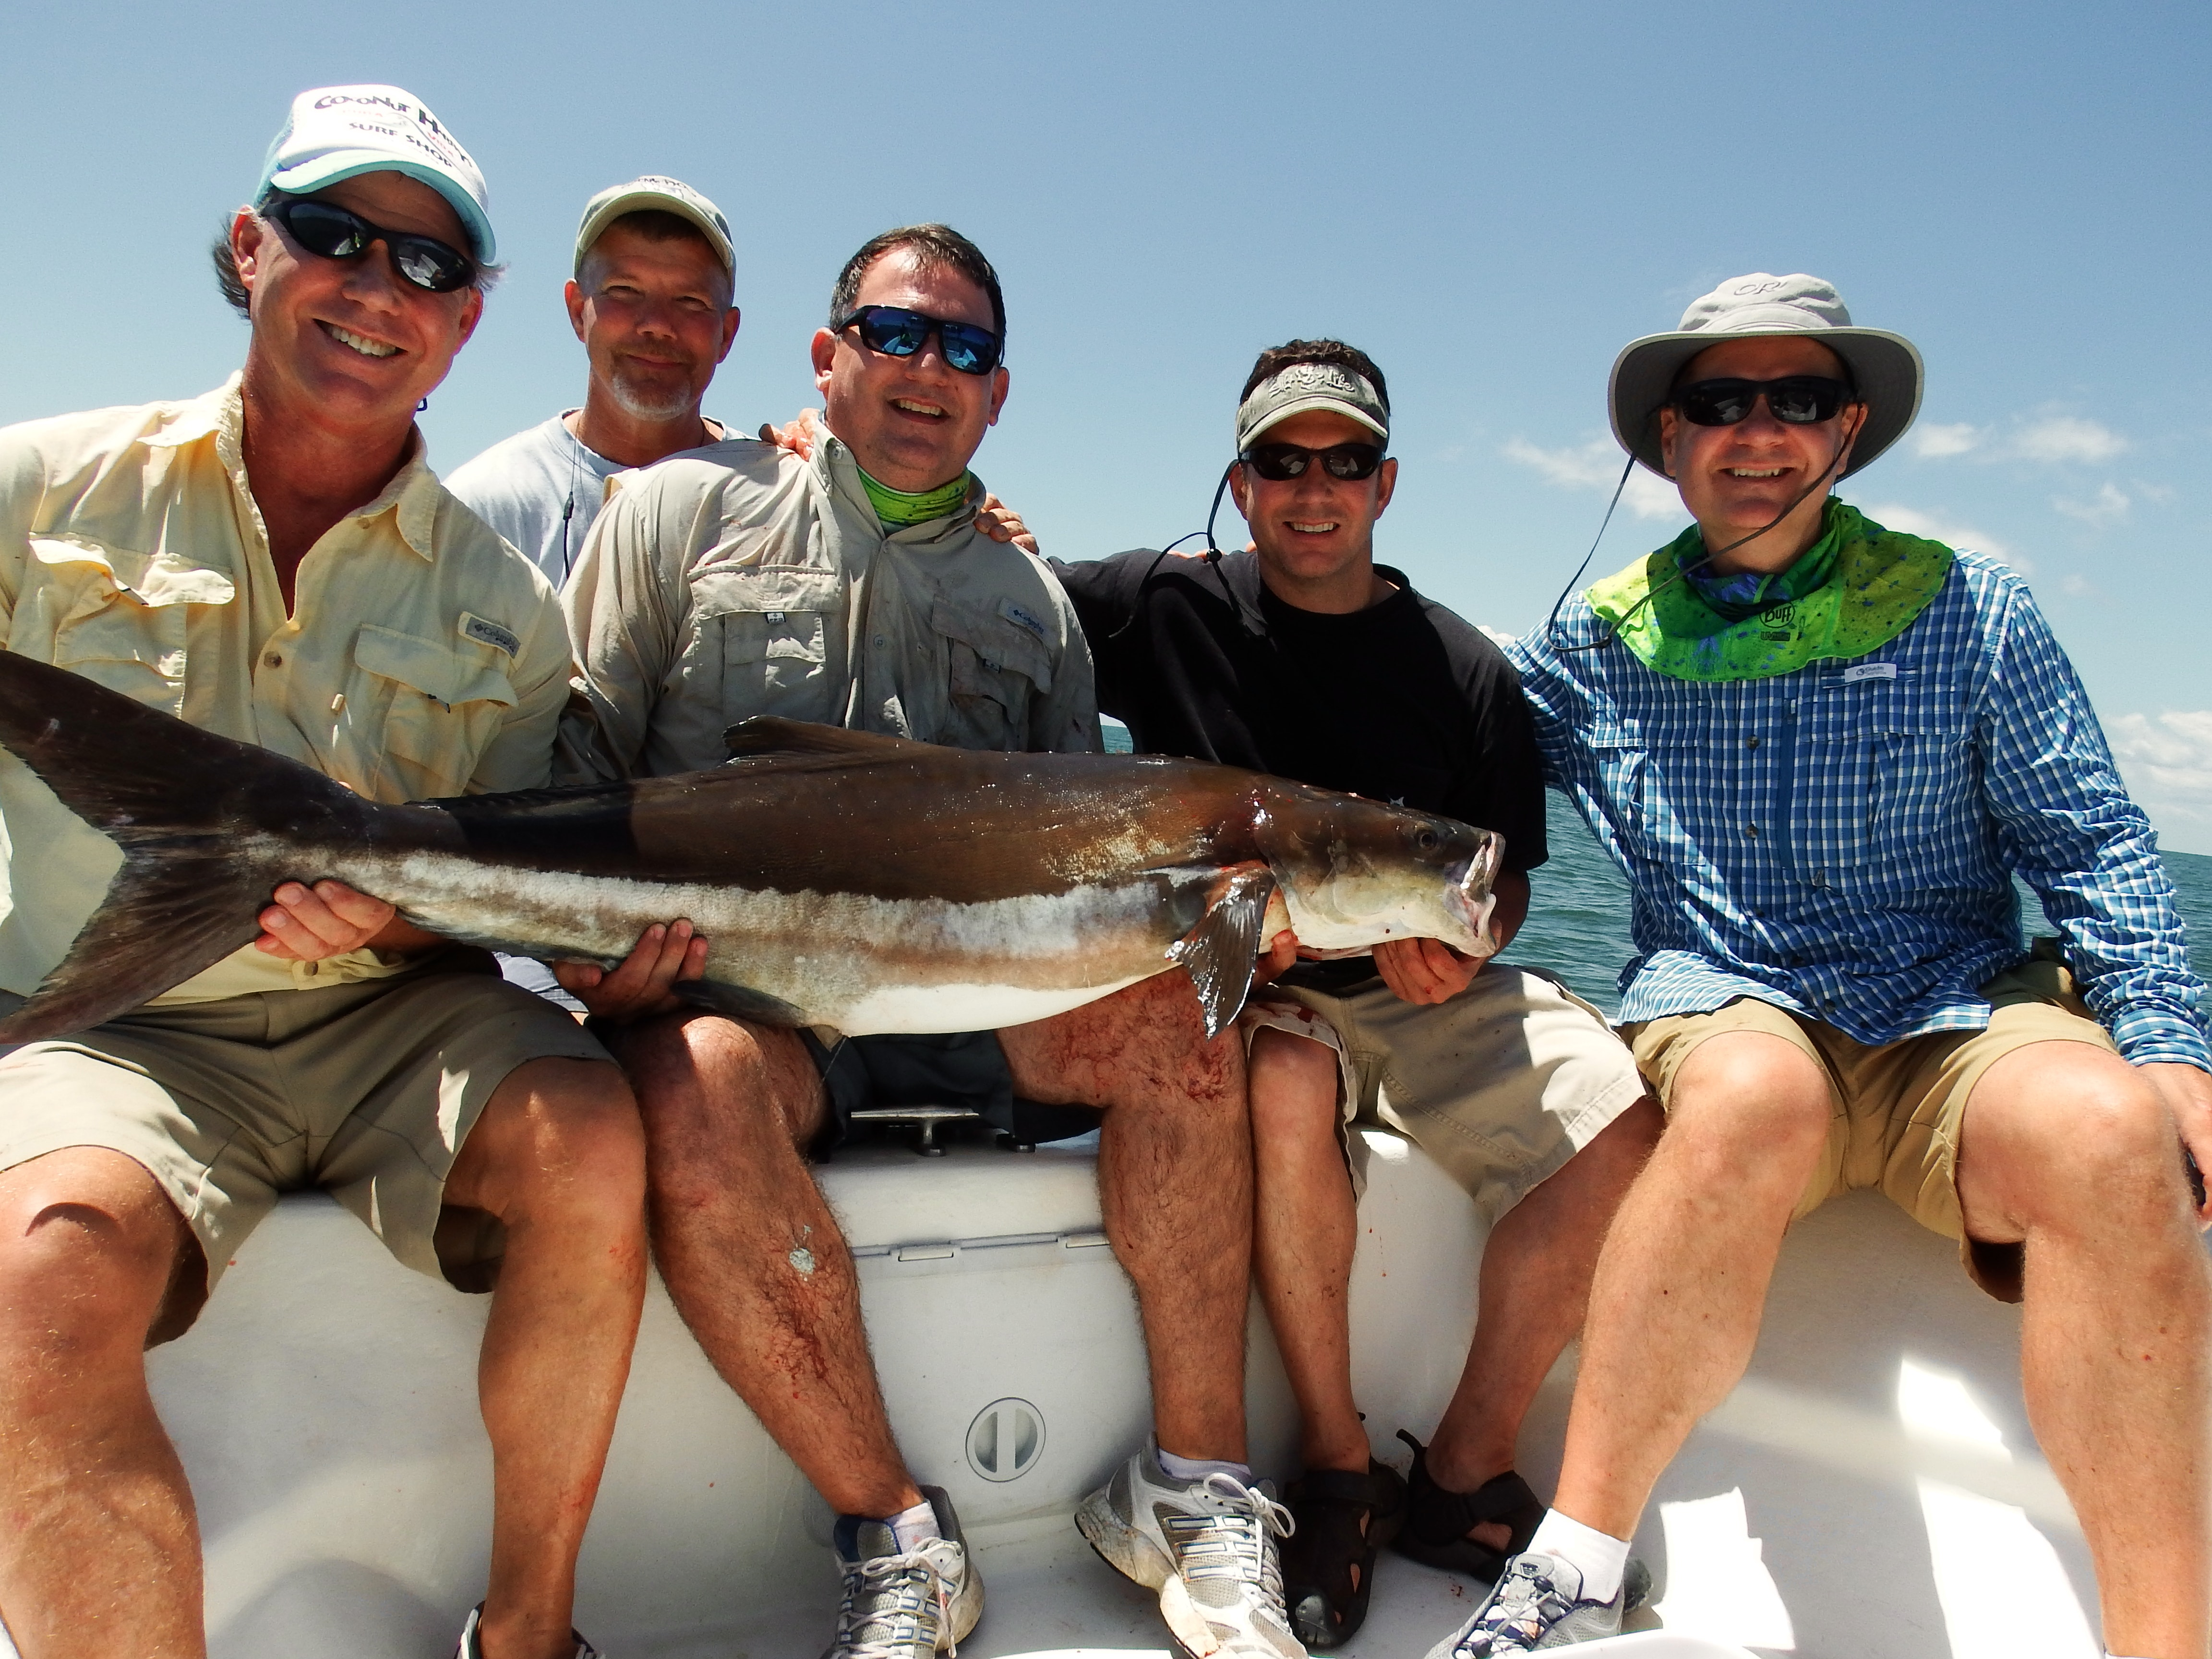 A group of fishermen smile as they hold a cobia